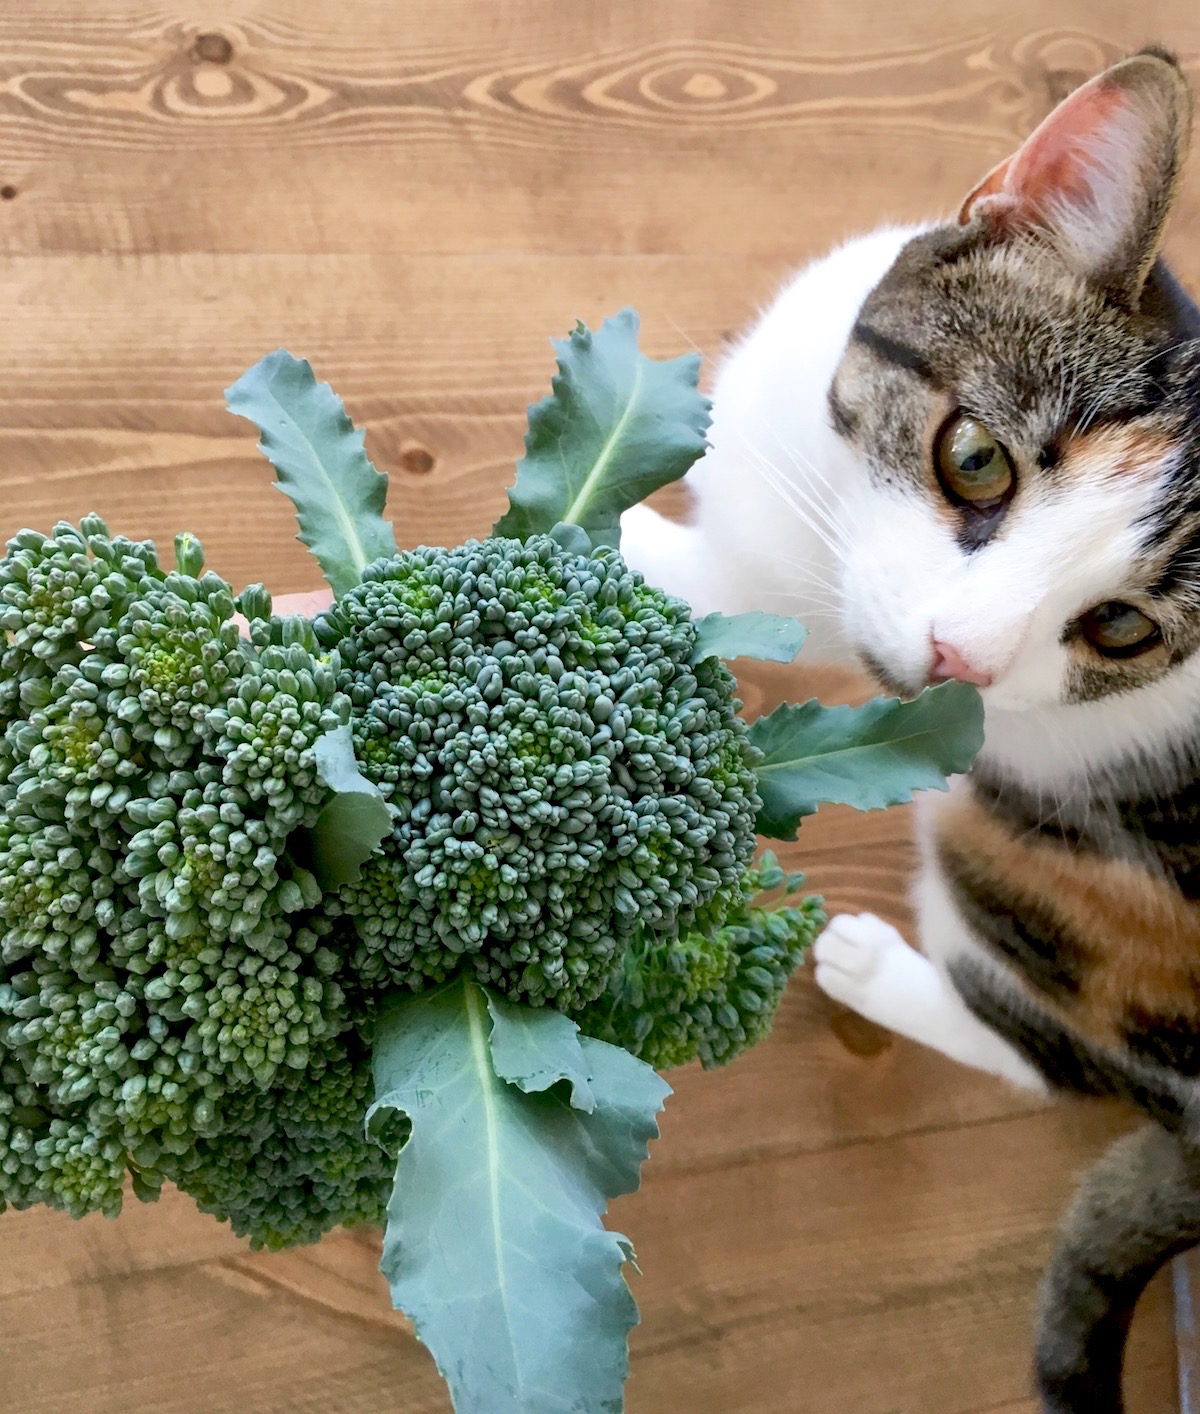 Broccoli and kitty